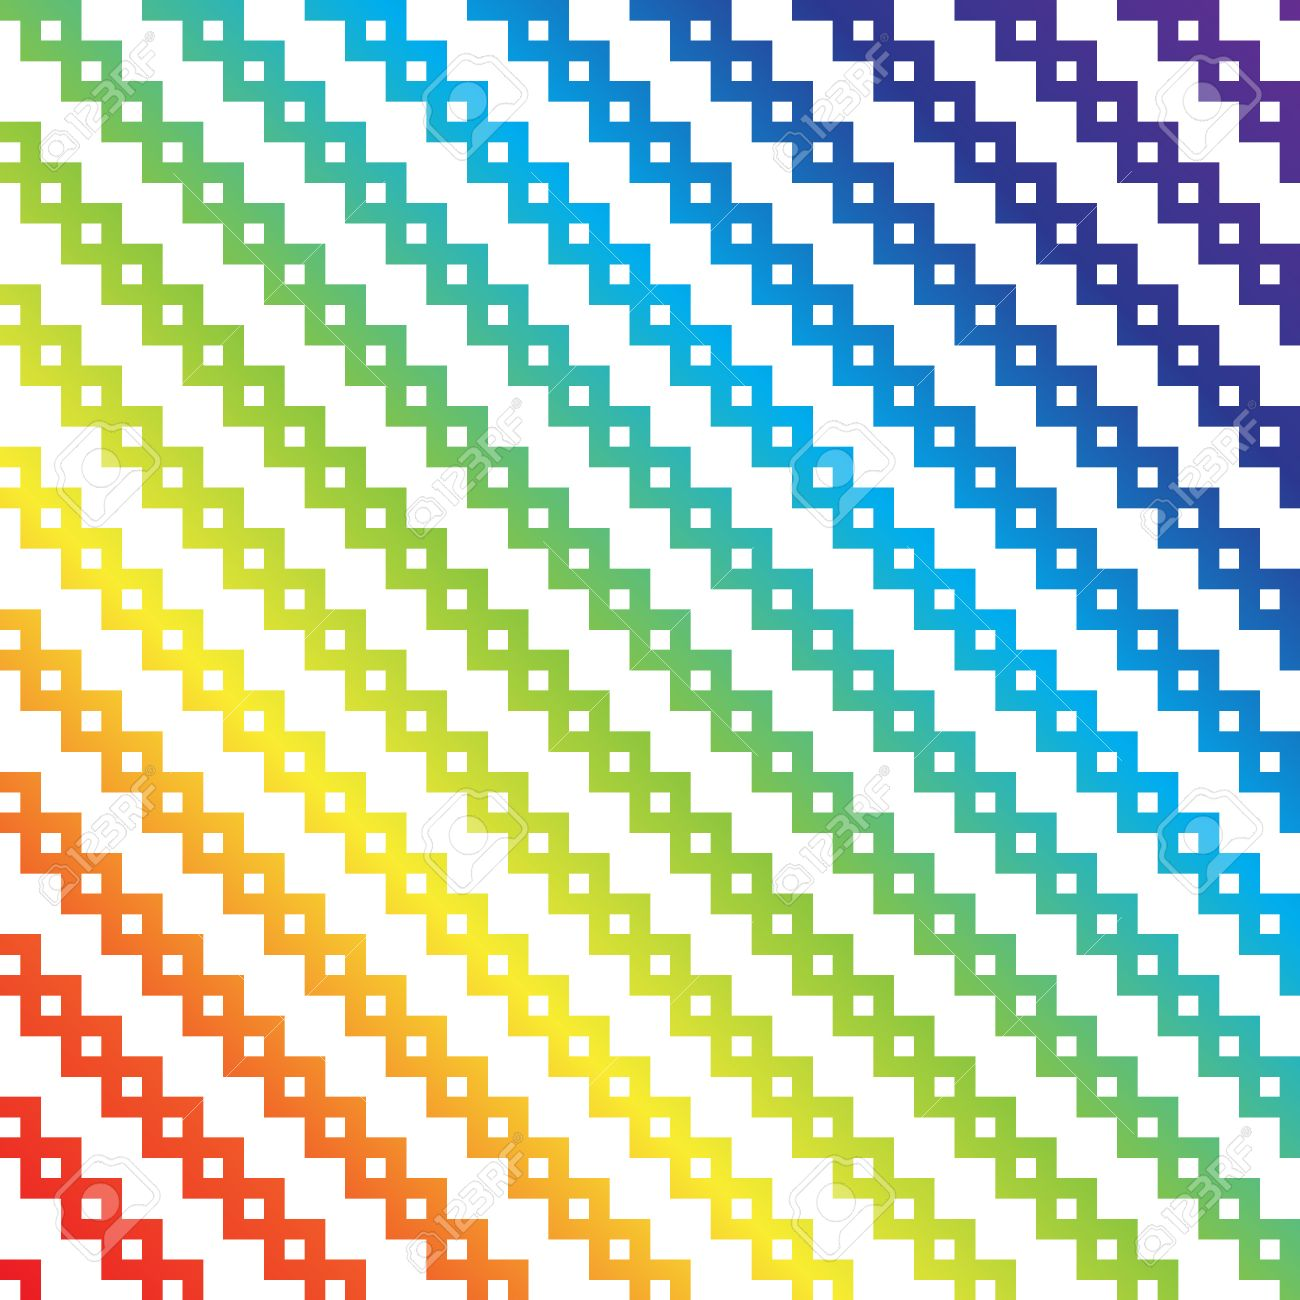 Rainbow Pixel Art Vector Abstract Background Pattern